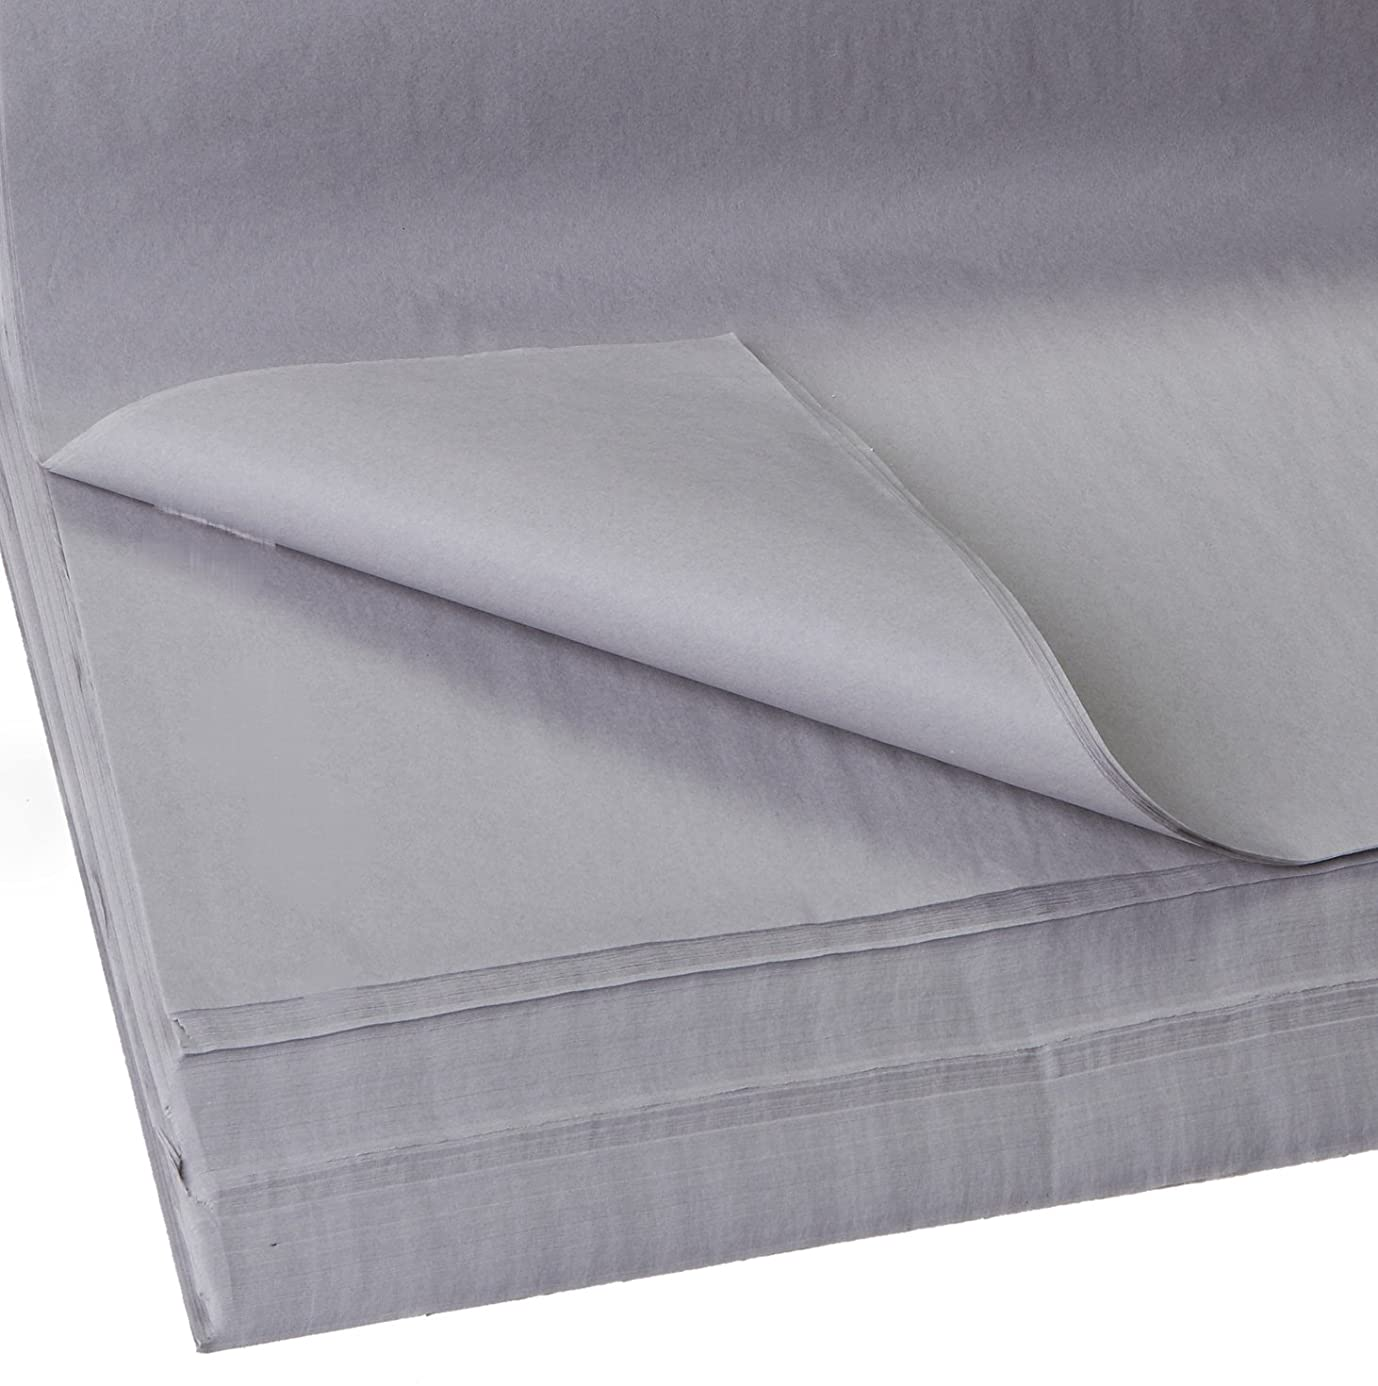 Jillson Roberts Bulk 20 x 30 Inches Recycled Tissue Available in 28 Colors, Gray, 480 Unfolded Sheets iql5923098